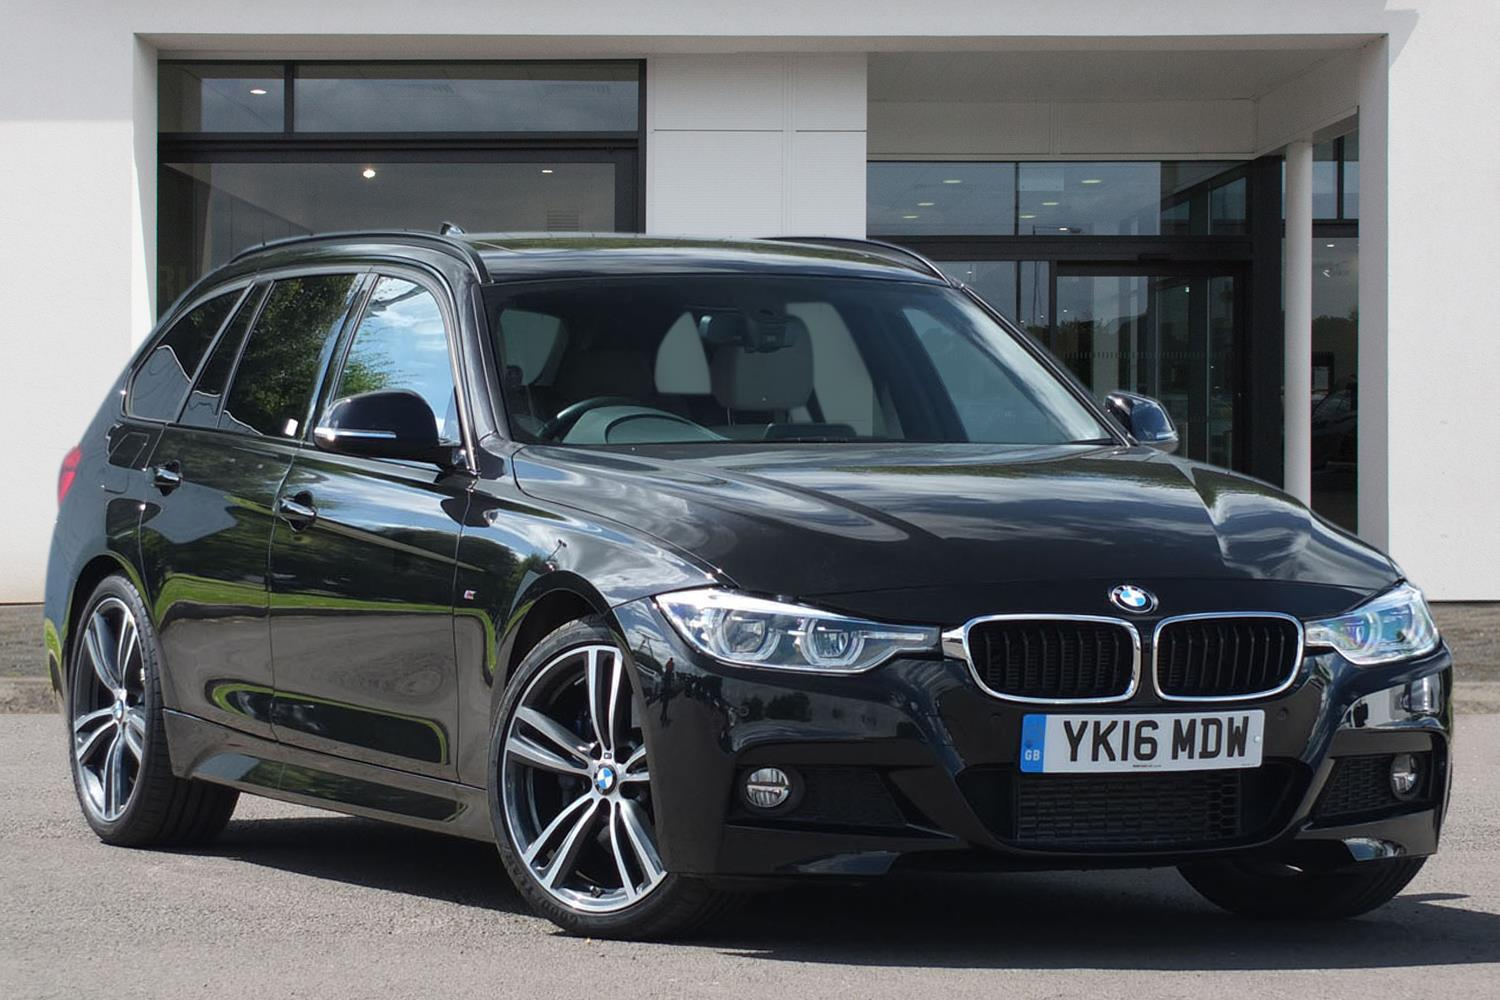 BMW 3 Series Touring YK16MDW - Image 1